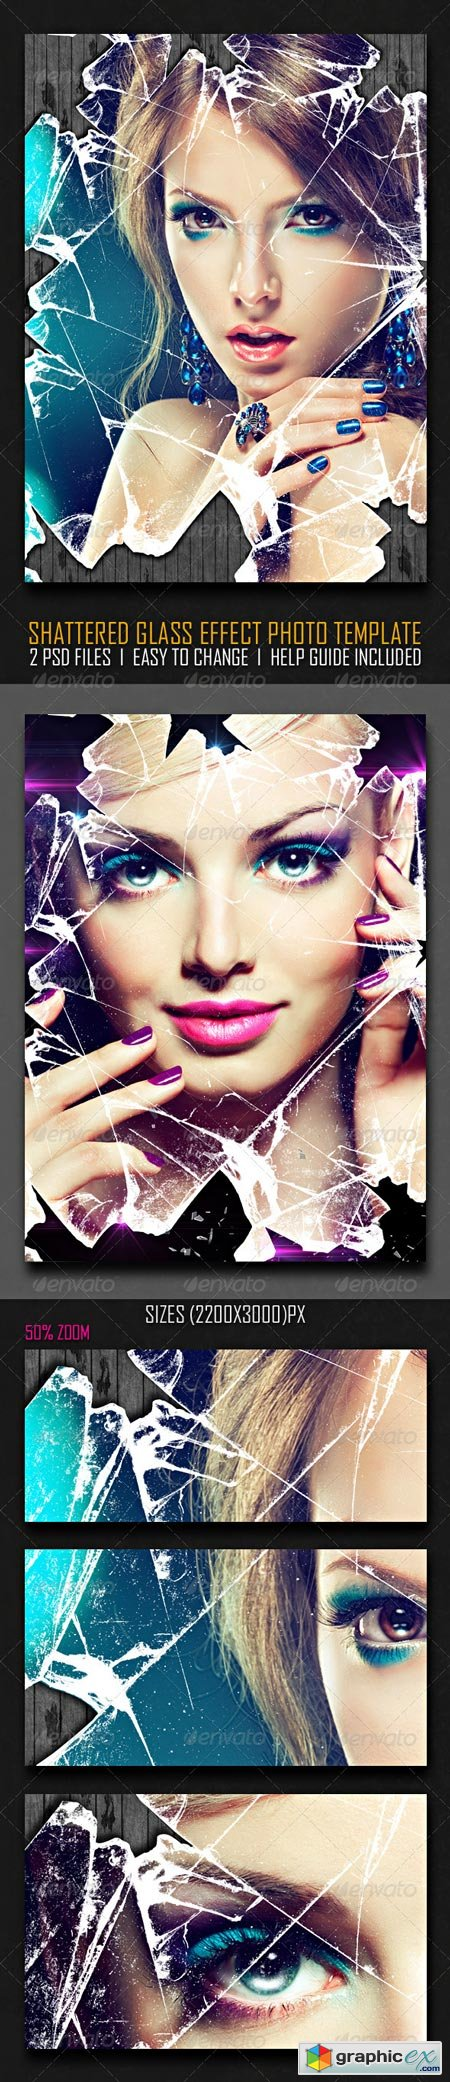 Shattered Glass Effect Photo Template 6521455